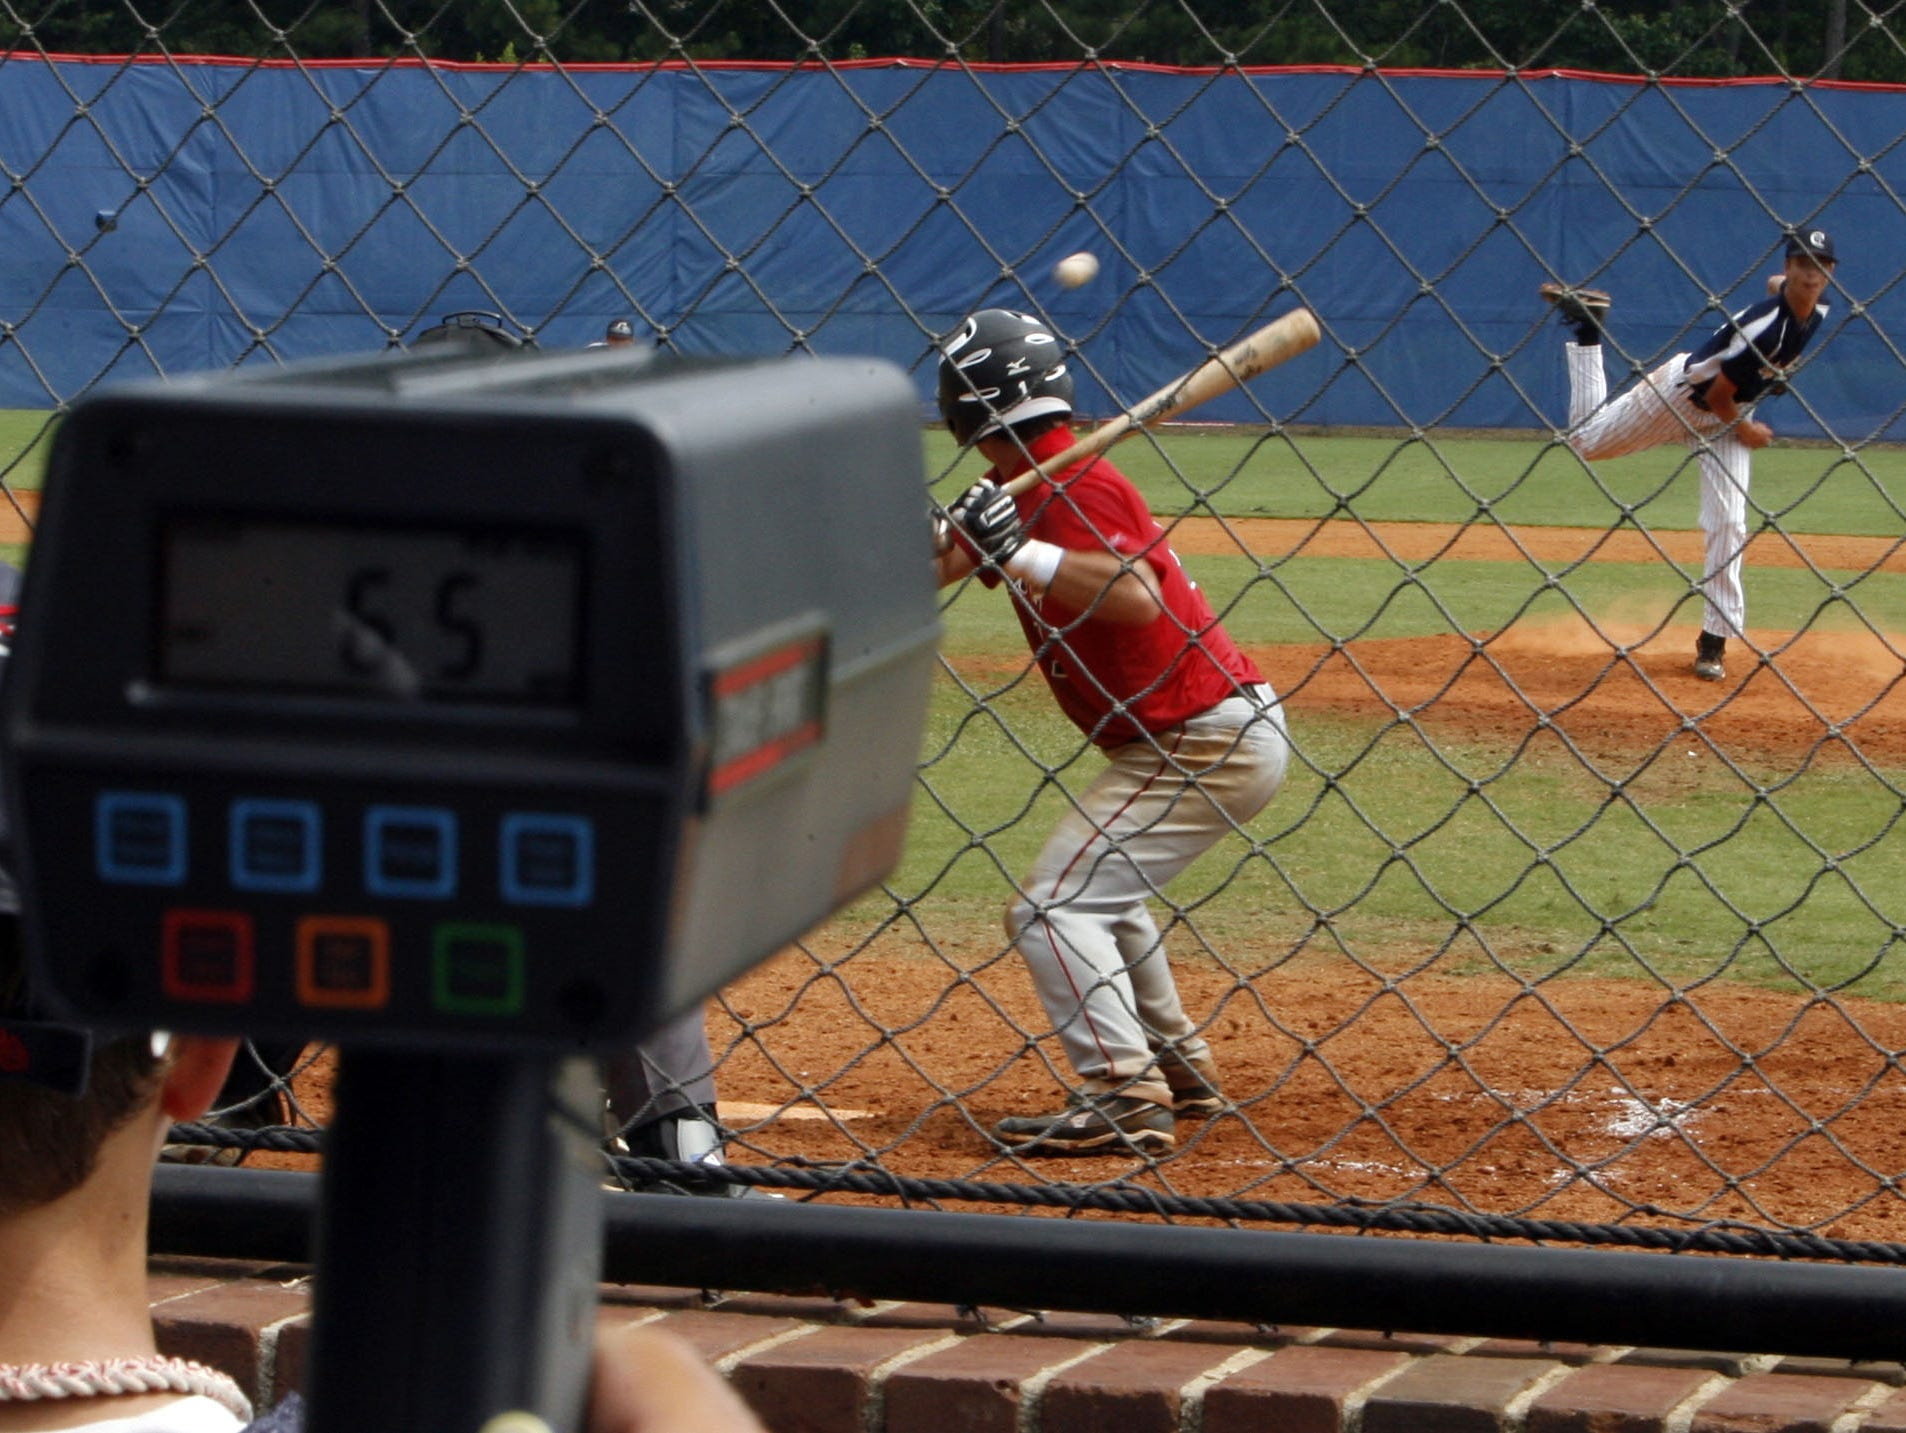 A college coach uses a radar gun to determine the pitch speed of a pitch by Stephen Hill of Carmel during the Perfect Game Invitational Baseball Tournament in Marietta, Ga. July 12, 2011. Hill plays for the World Yacht Clippers, which is comprised of high school baseball players primarily from Lower Hudson region. Thousands of the best high school baseball players in the nation gathered for two weeks to play games in front of college and professional scouts in the hope of receiving scholarships to colleges or being pursued major league organizations. ( Seth Harrison / The Journal News )